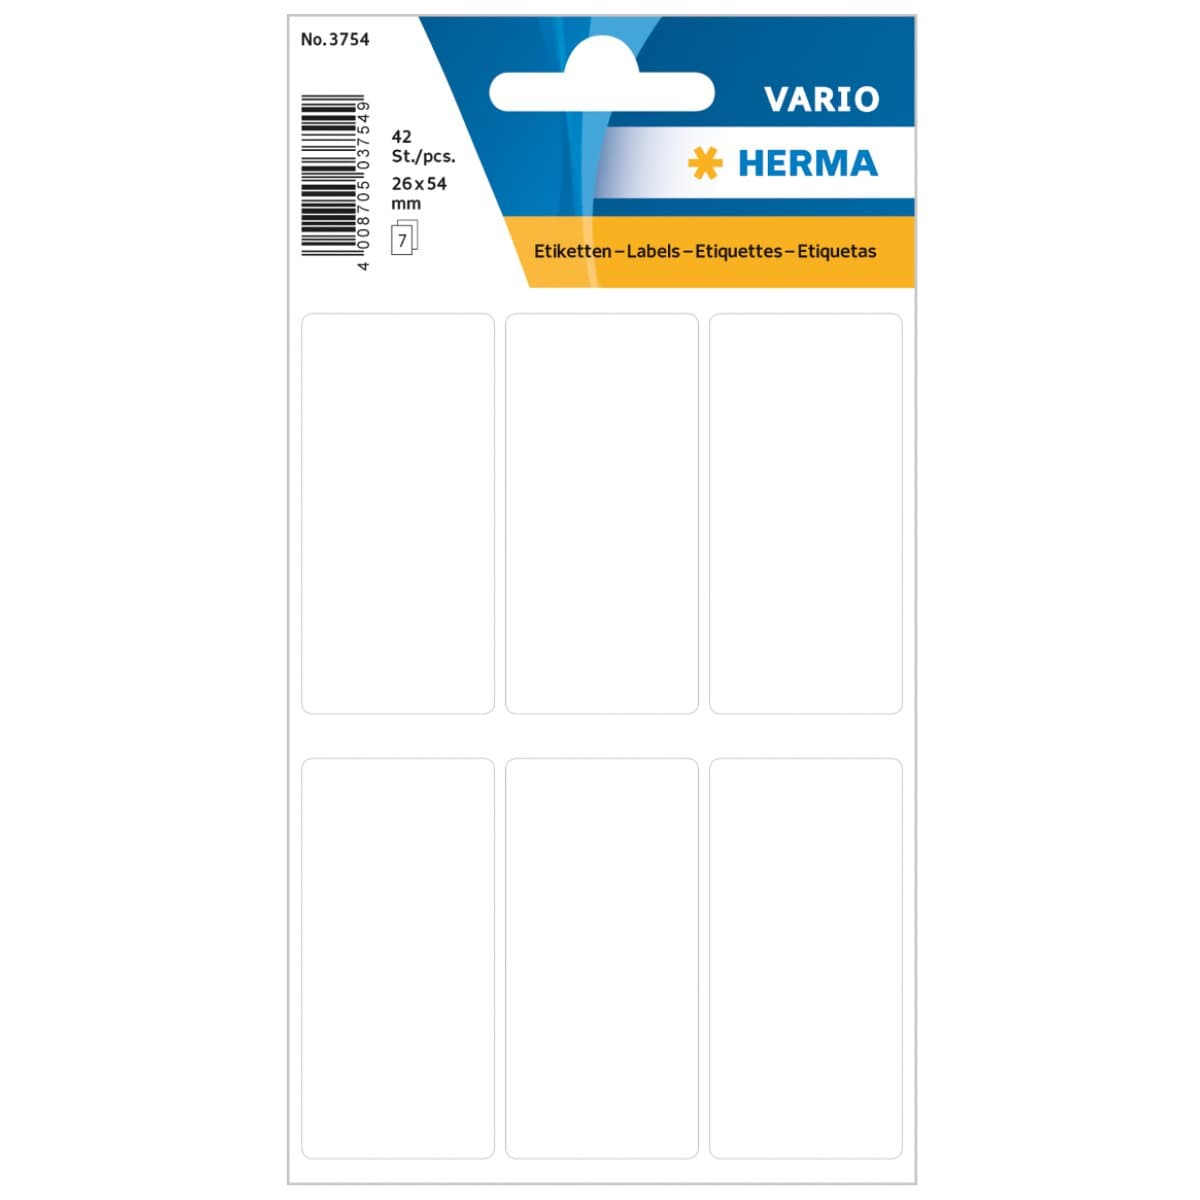 Herma Vario Sticker Labels, 26 x 54 mm, 42/pack, White